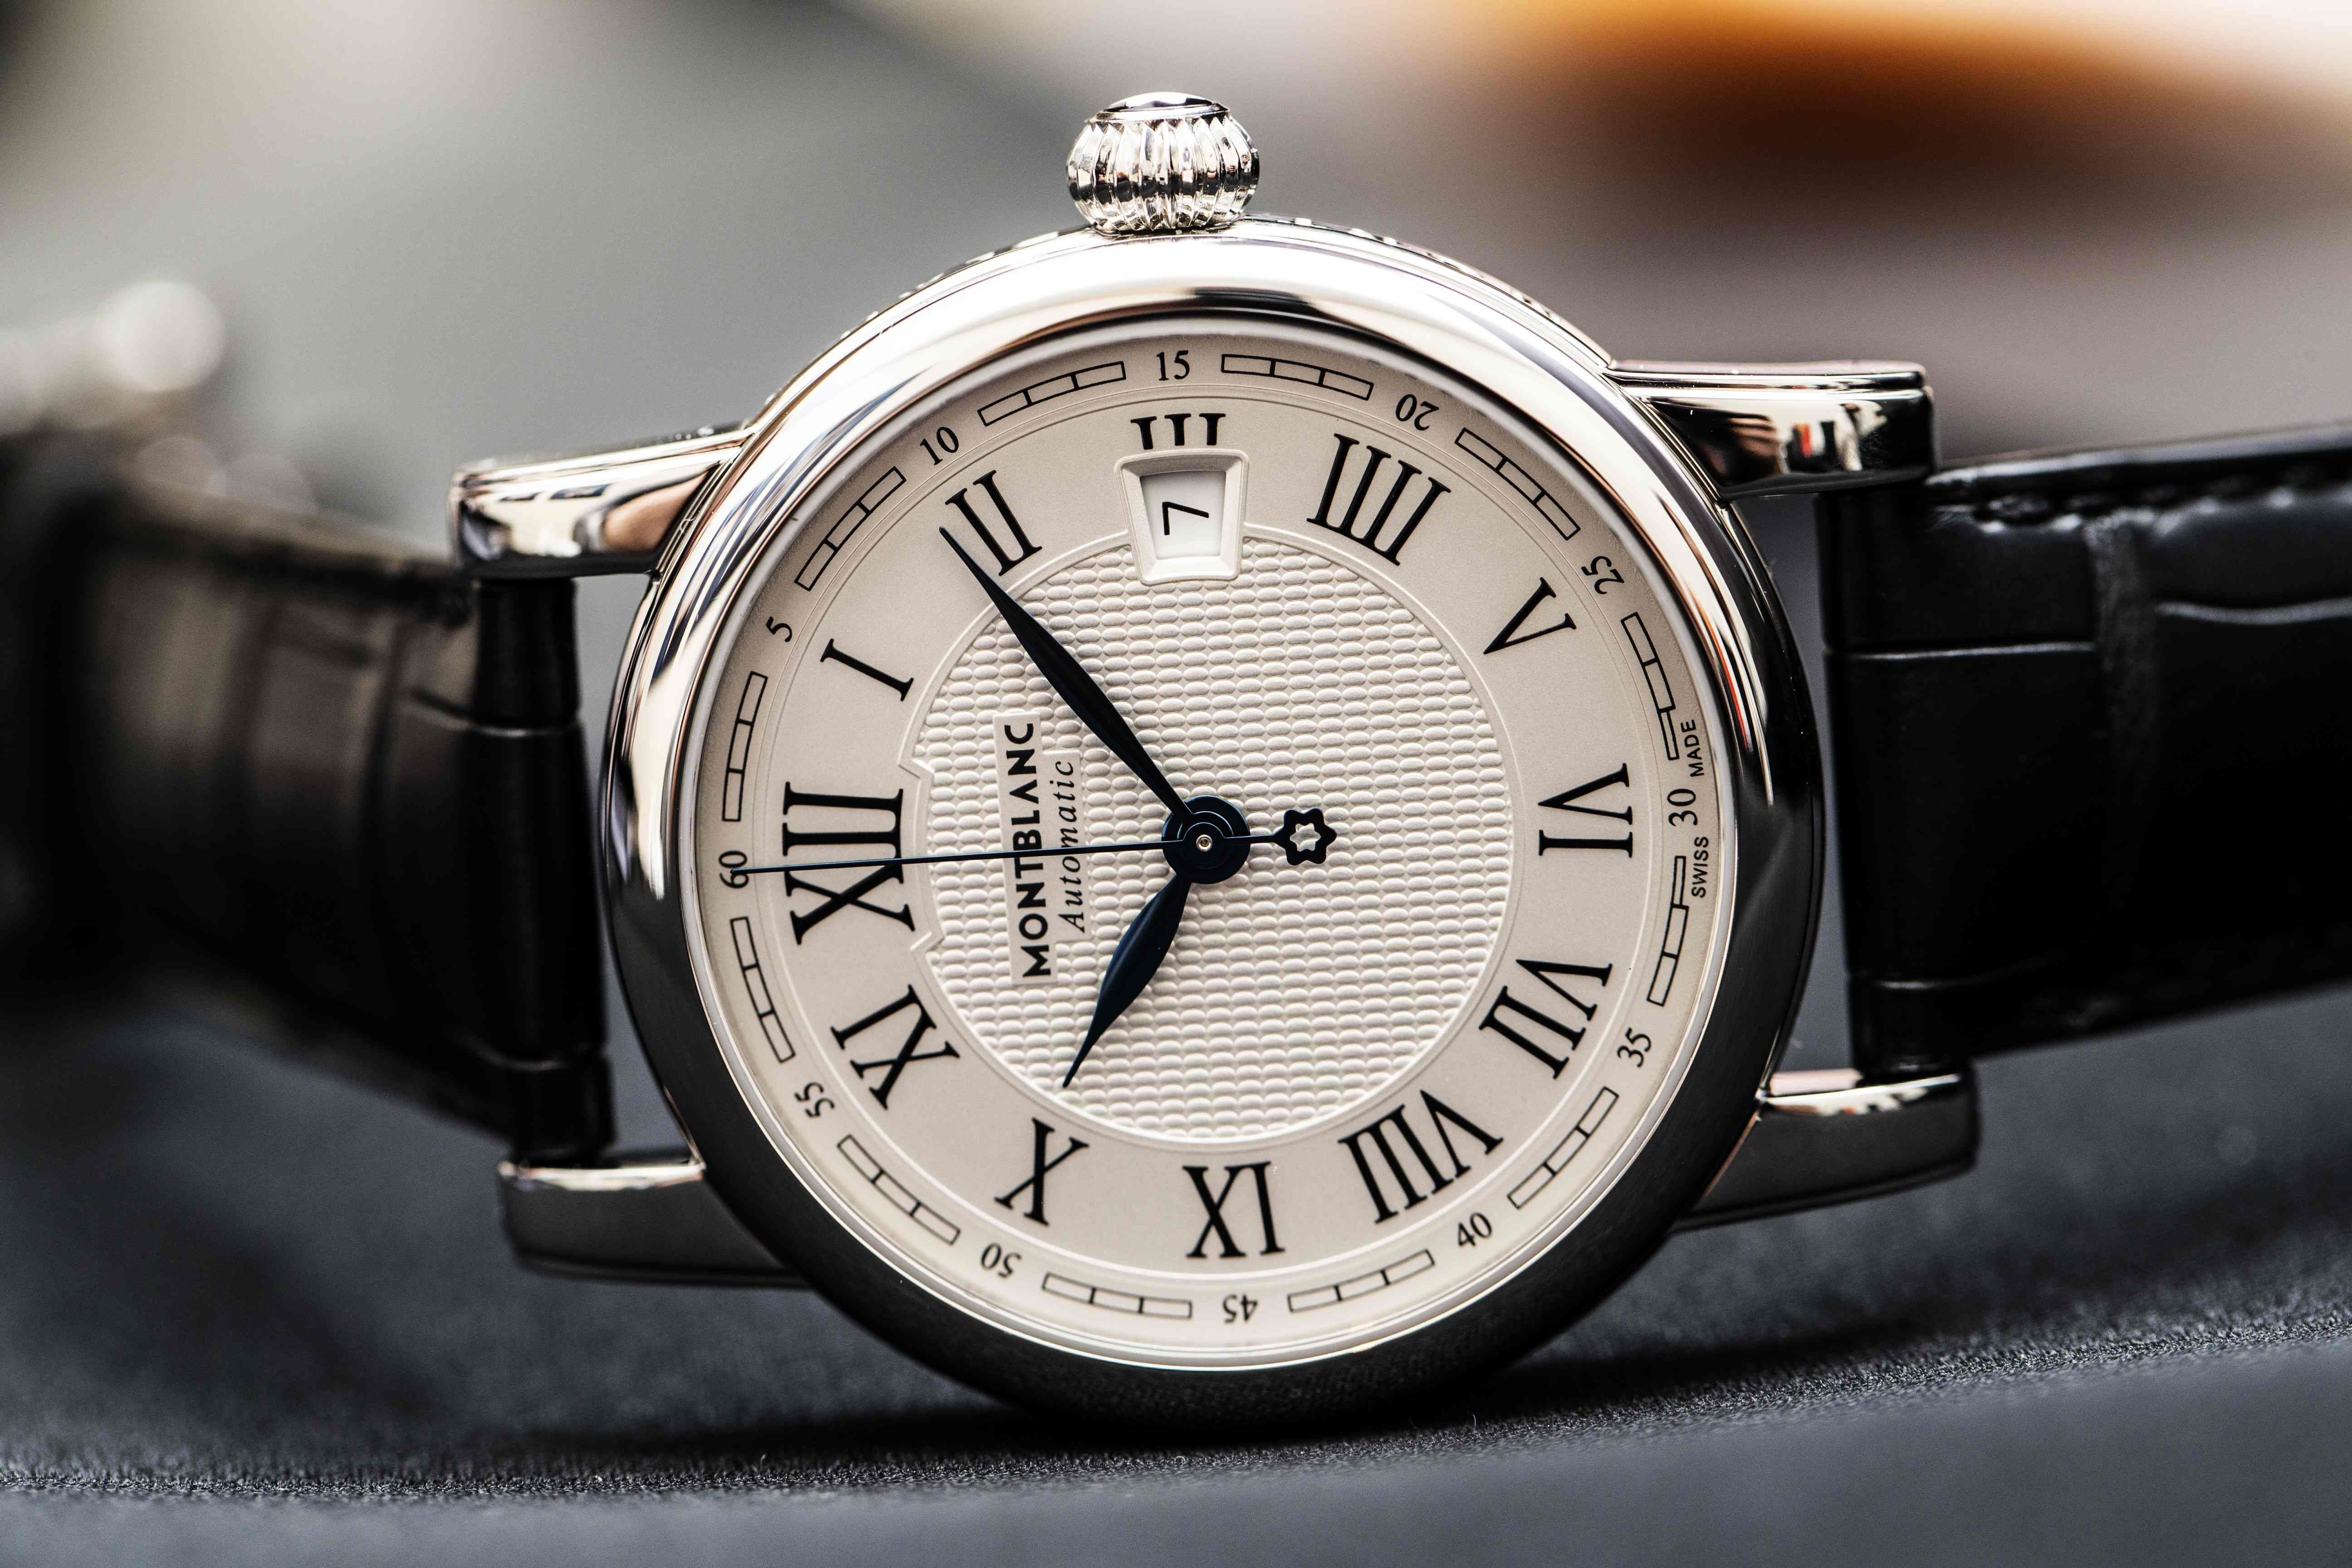 c61a5fdc7d4 Baume & Mercier's Clifton vs. Montblanc's Star Date Automatic ...